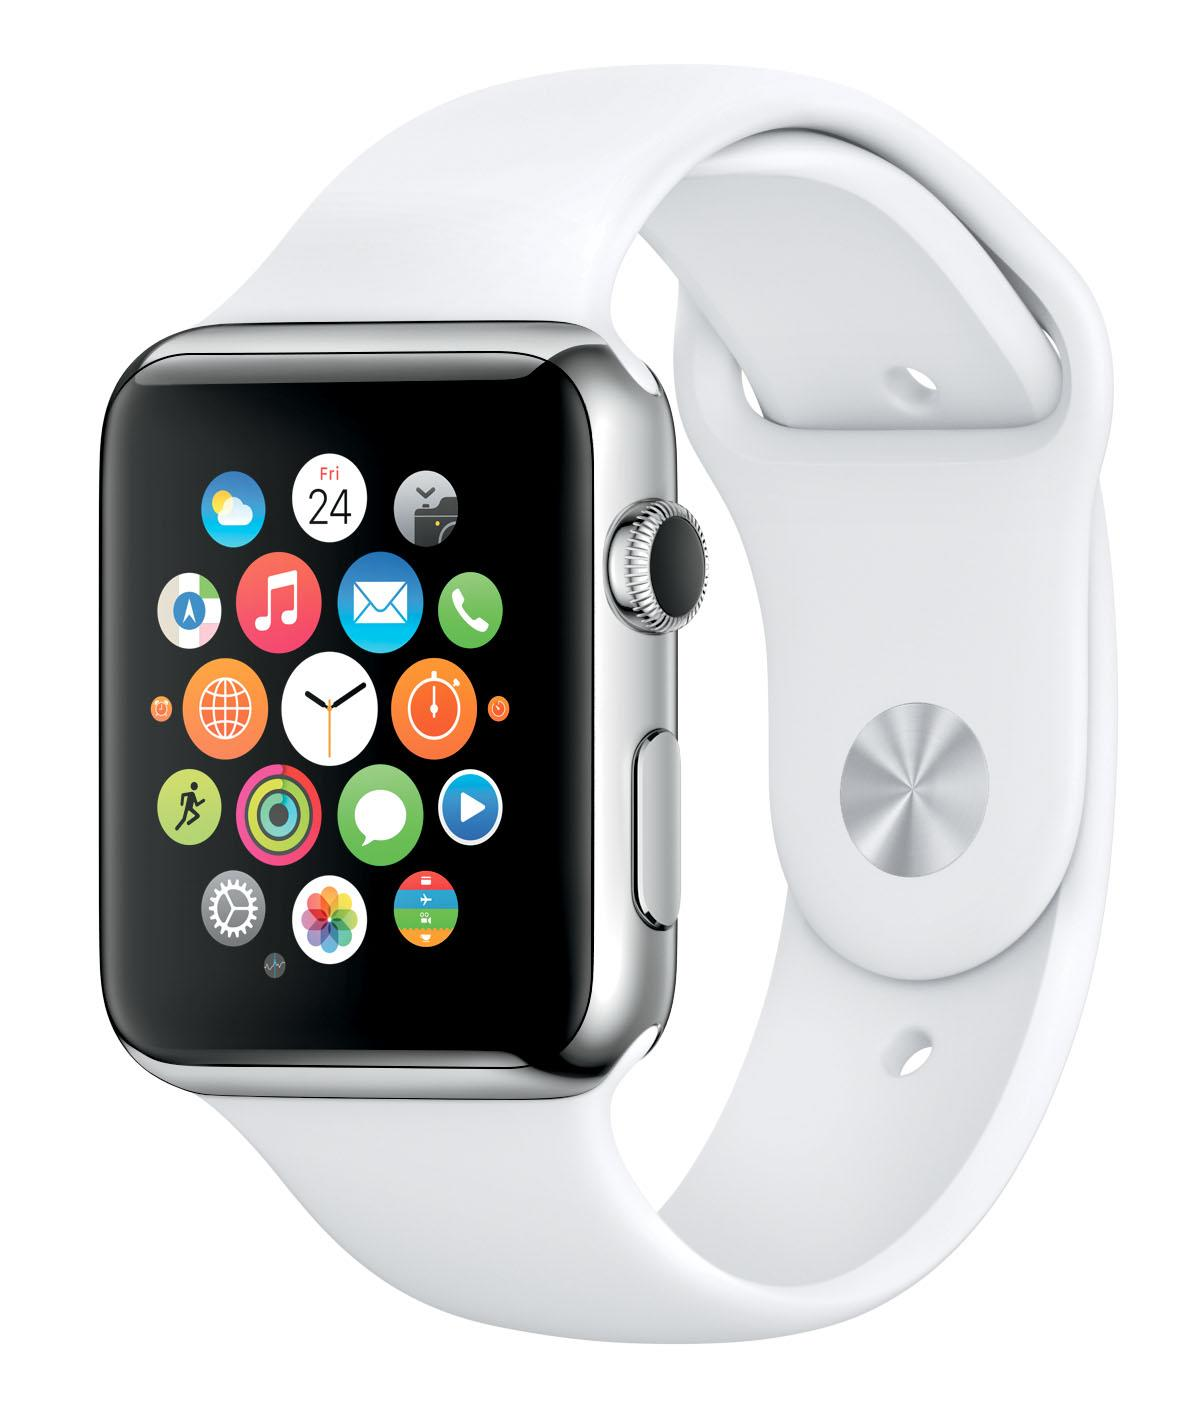 Air Canada to launch Apple Watch app next month